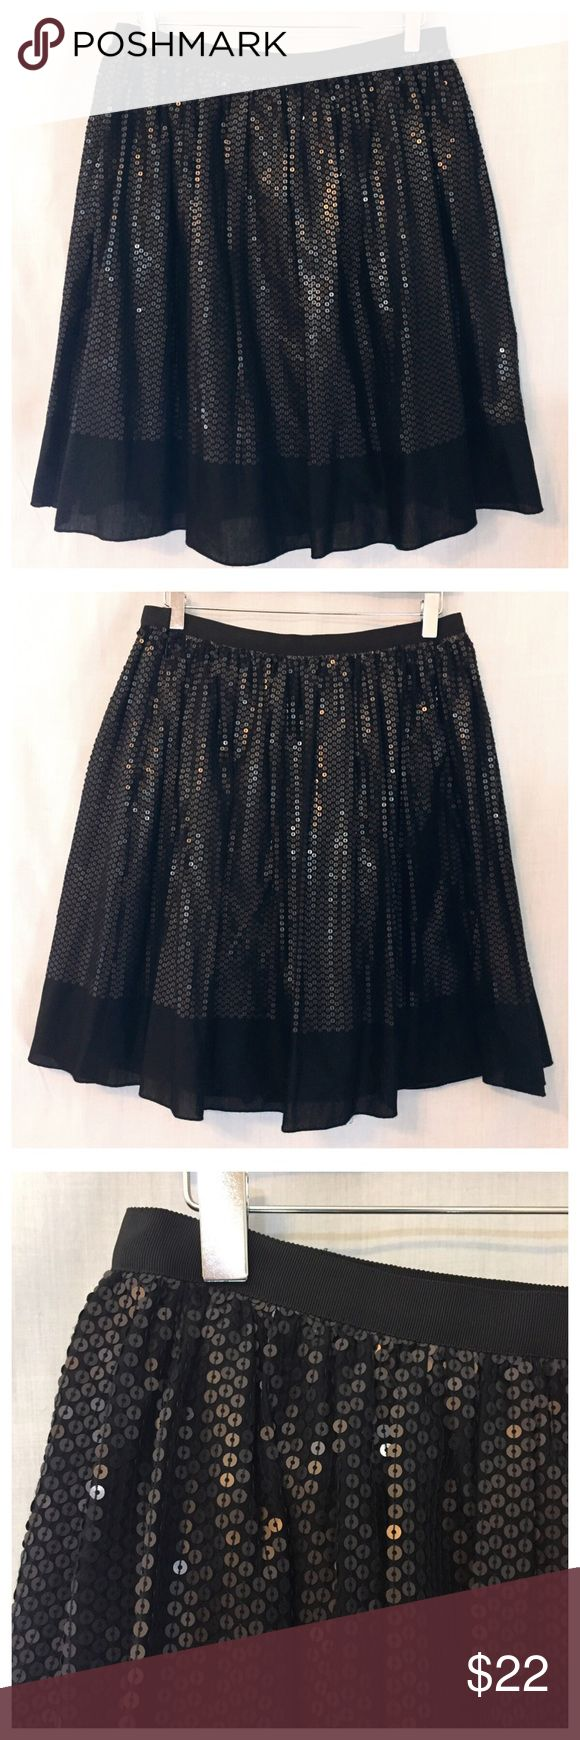 """Talbots Black Sequin Full Bubble Skirt 10P NWOT Talbots Black Sequin Full Bubble Skirt 10 Petite 10P NWOT • Size 10 Petite (petite clothing is proportioned for women 5'4"""" and under) • Will also fit size 8 • New without tags • Black grosgrain ribbon waistband • Side zipper with hook and eye and button closure • 100% cotton shell • Fully lined in 100% cotton • 15"""" waist • 22"""" length • 4"""" at the bottom of the skirt are without decoration  • Black background with black matte sequins sewn on in…"""